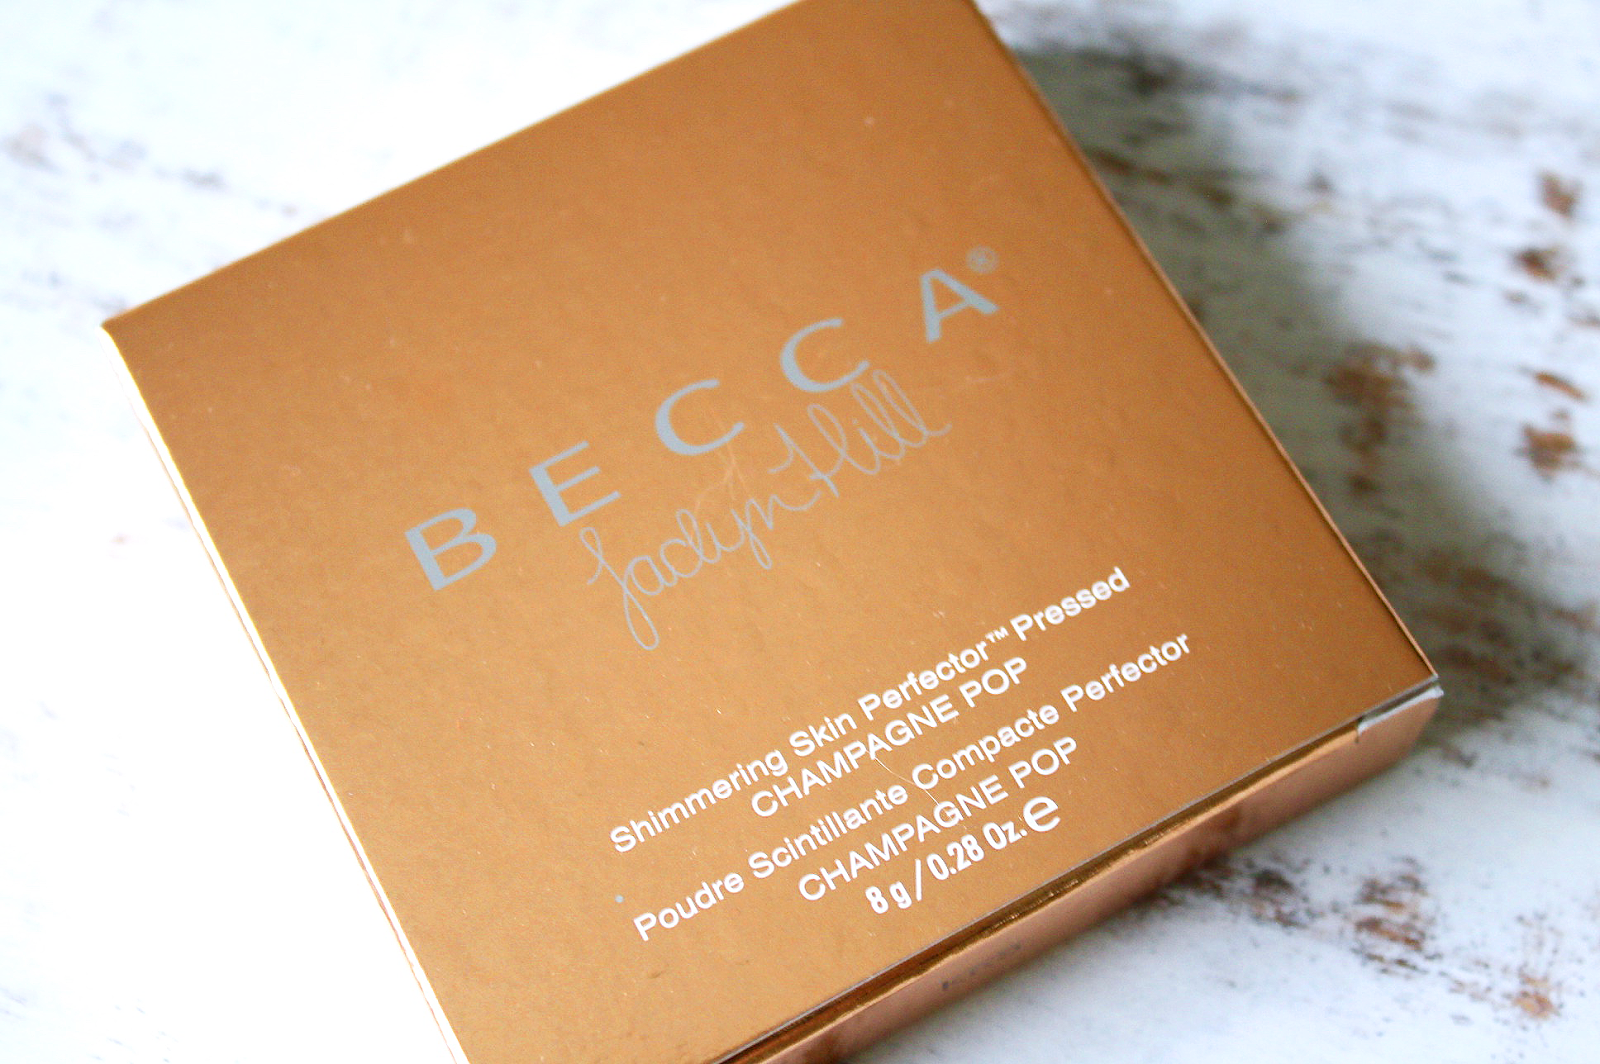 Becca Shimmering Skin Perfector Pressed Review